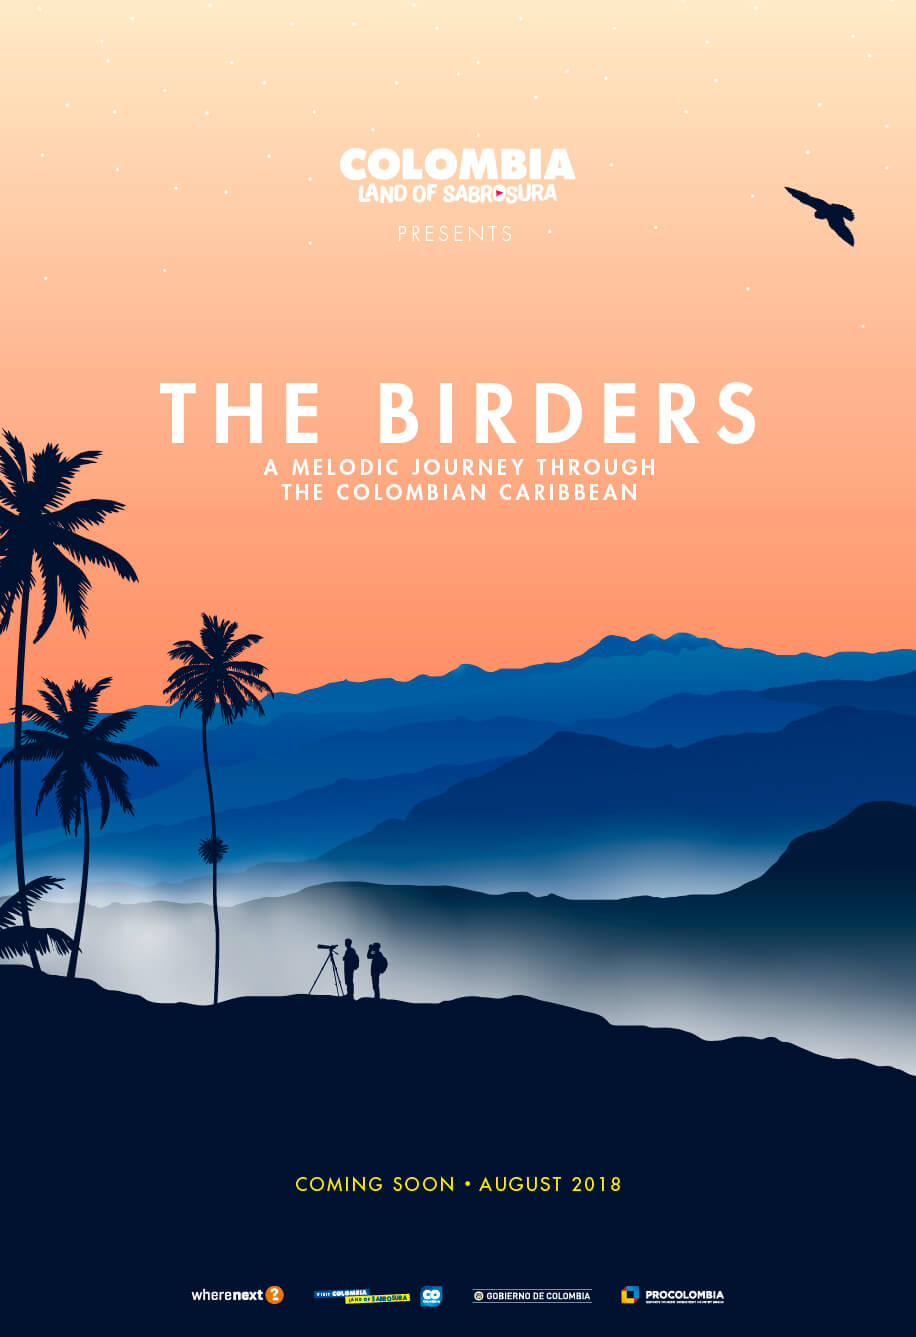 The Birders, FIlming in Colombia